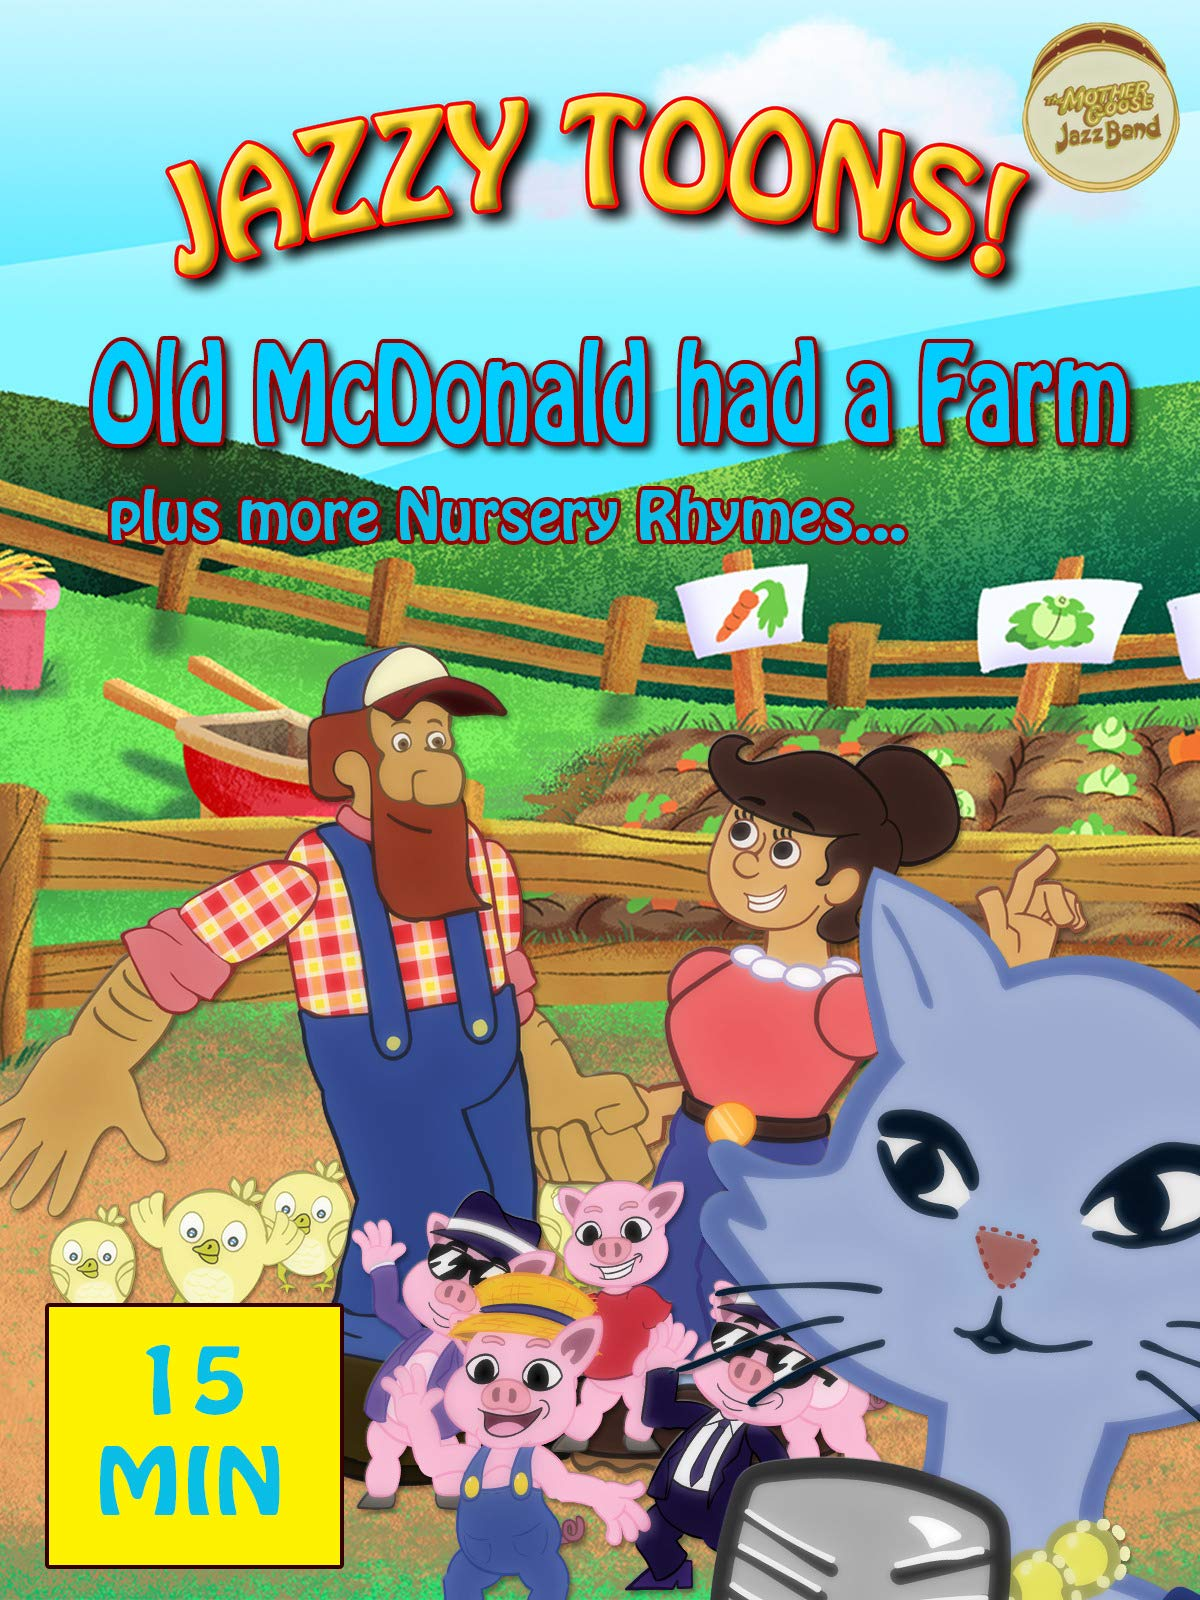 Jazzy Toons! Old McDonald Had a Farm Plus More Nursery Rhymes